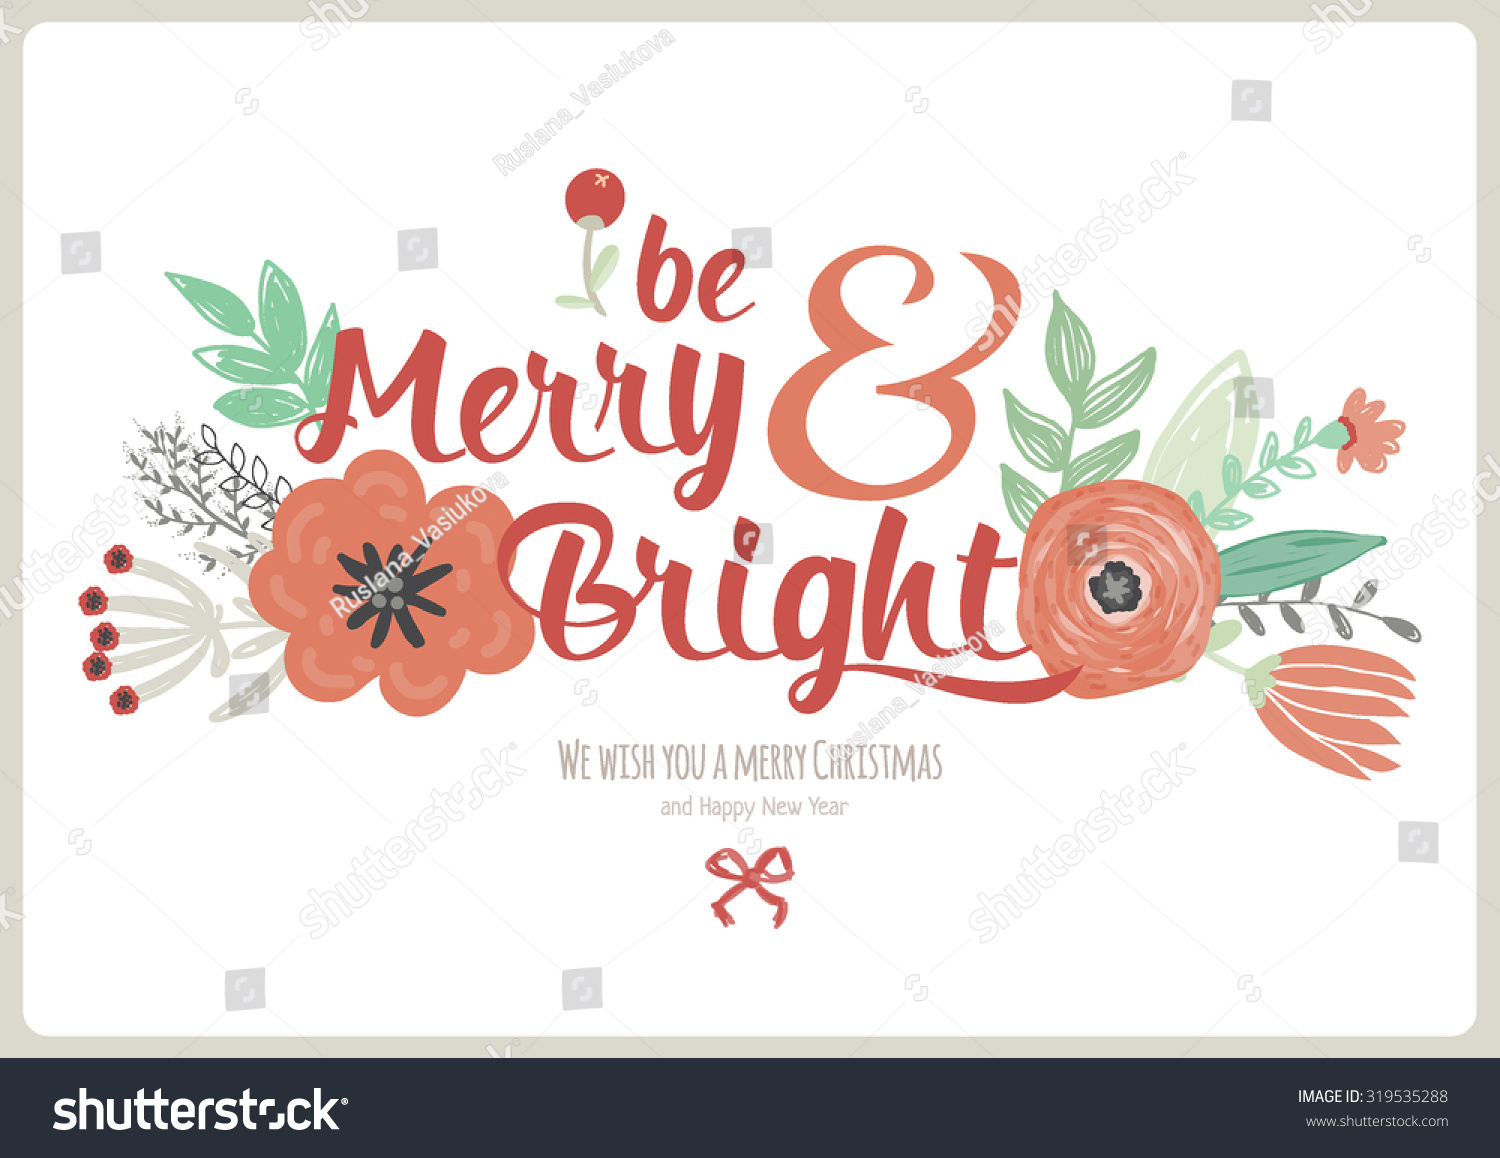 Vintage Merry Christmas Happy New Year Stock Vector (Royalty Free ...